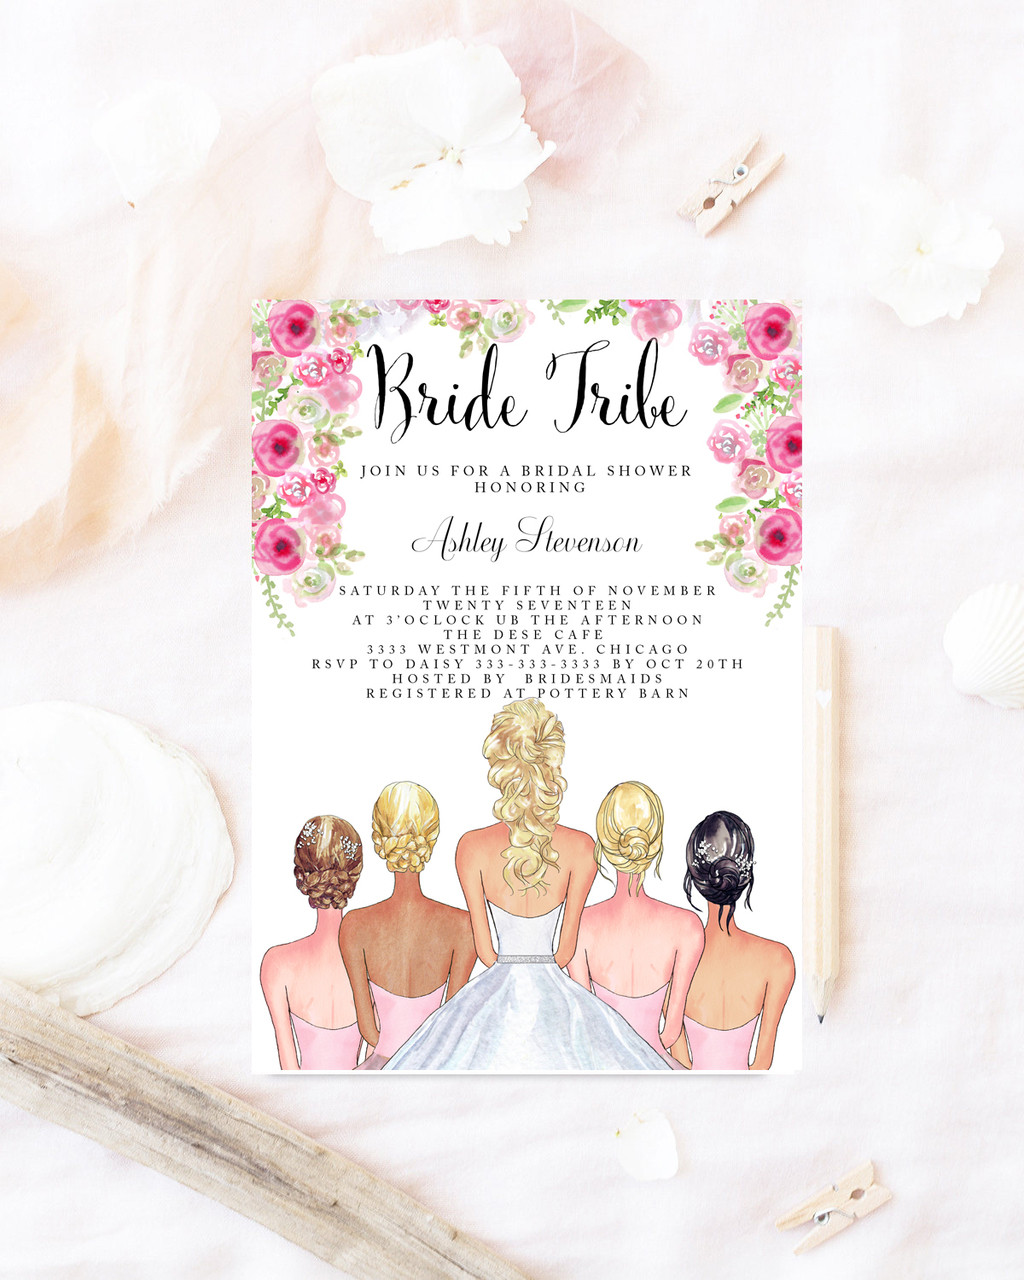 Bridal shower invitation bride tribe bridal shower invite bridal shower invitation bride tribe bridal shower invite bridesmaid bridal shower invitationbride filmwisefo Choice Image